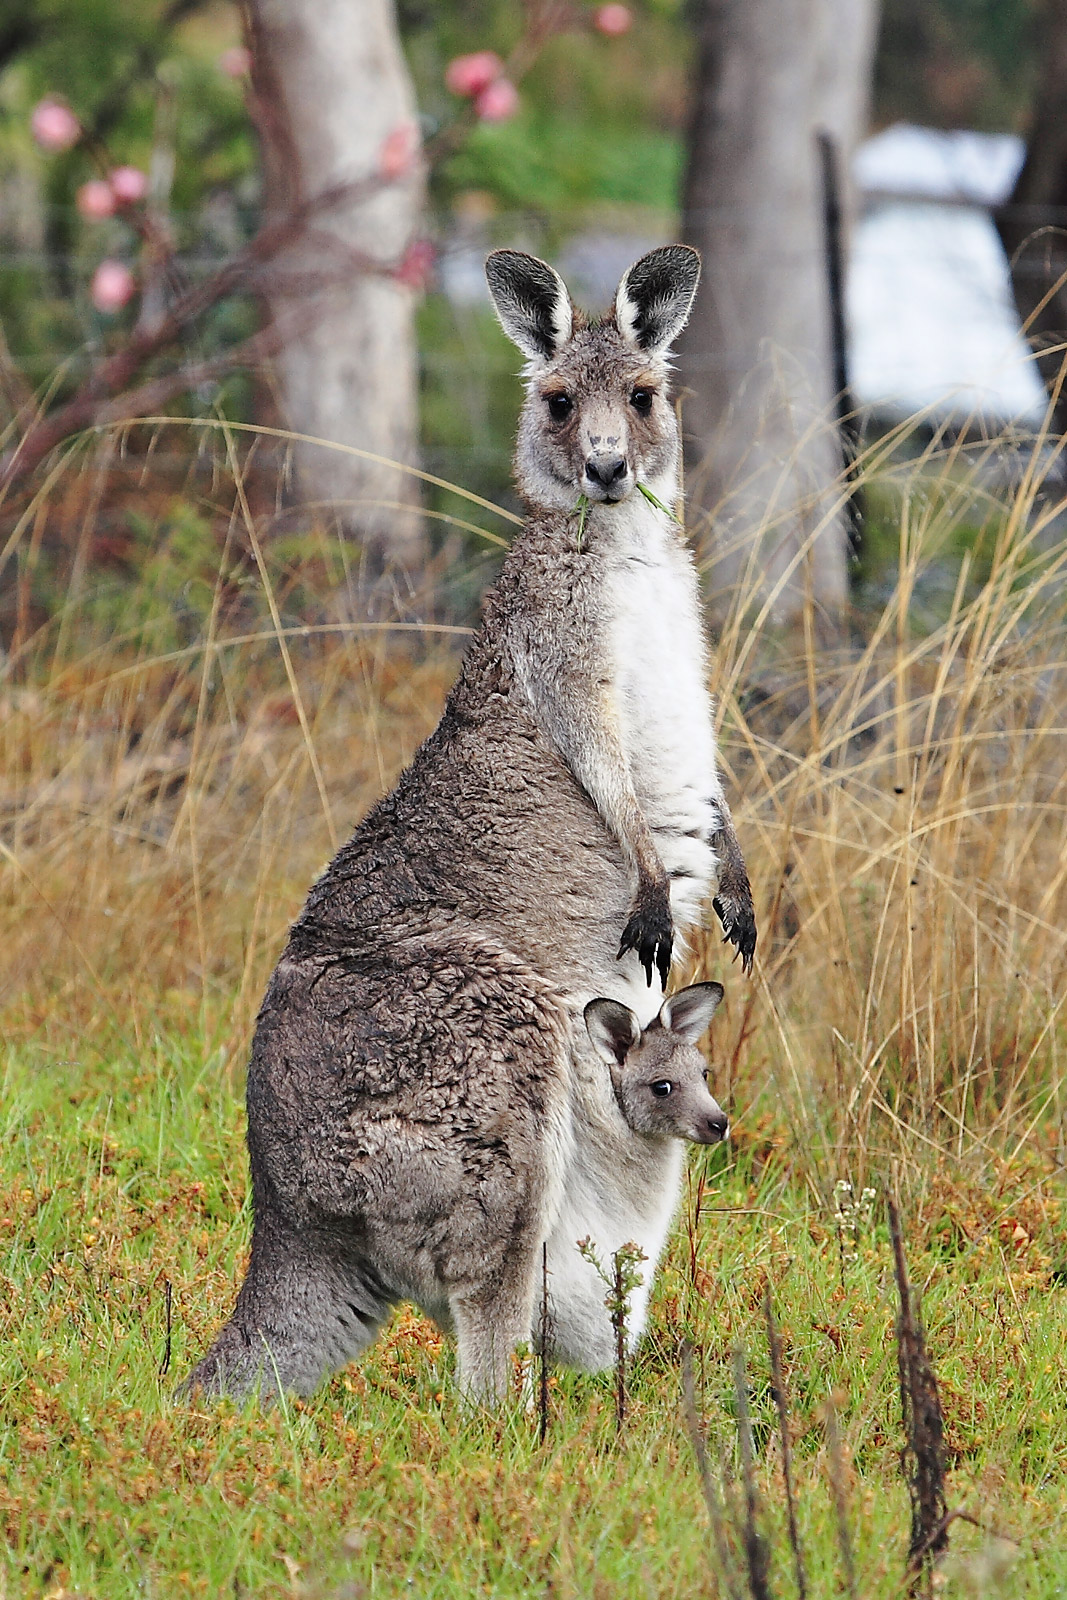 This baby marsupial is finishing its developement in it's mothers pouch.(JS)